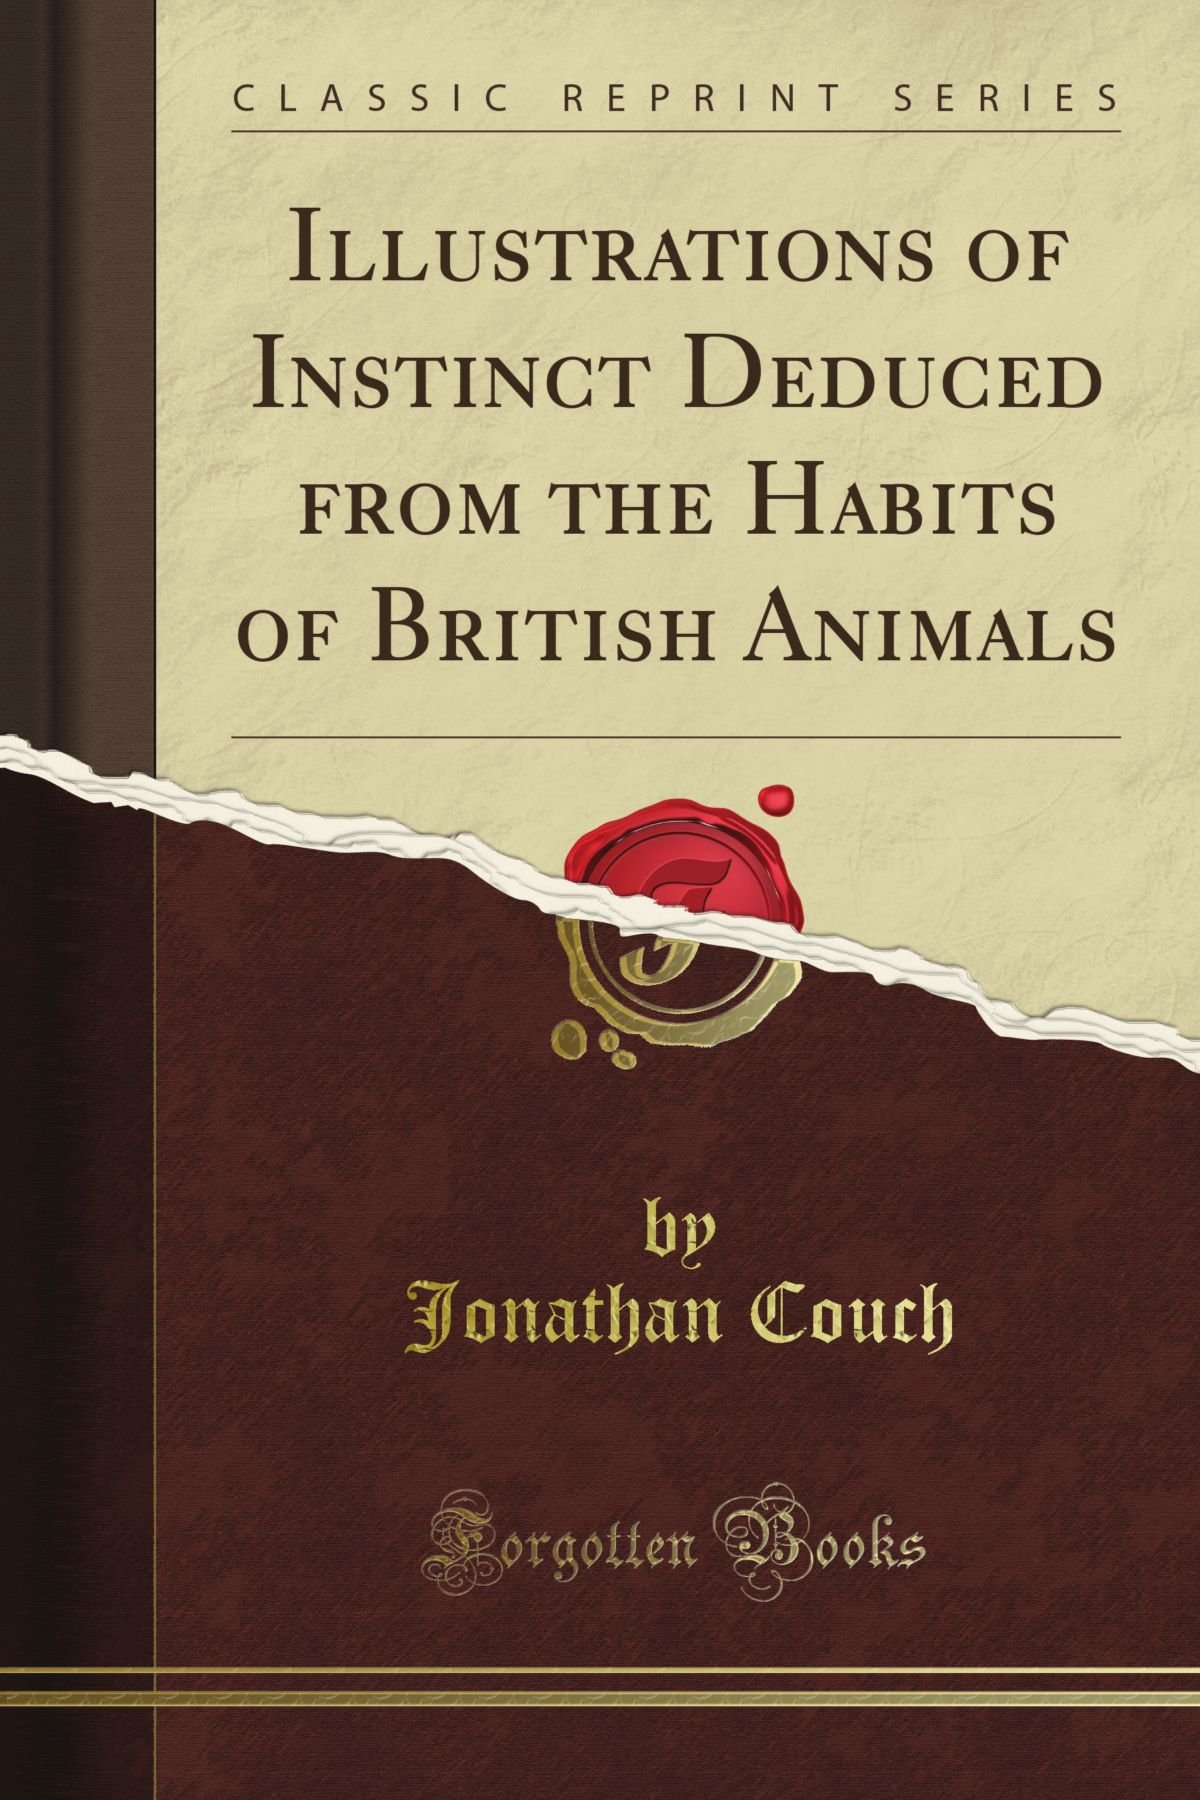 Illustrations of Instinct Deduced from the Habits of British Animals (Classic Reprint) pdf